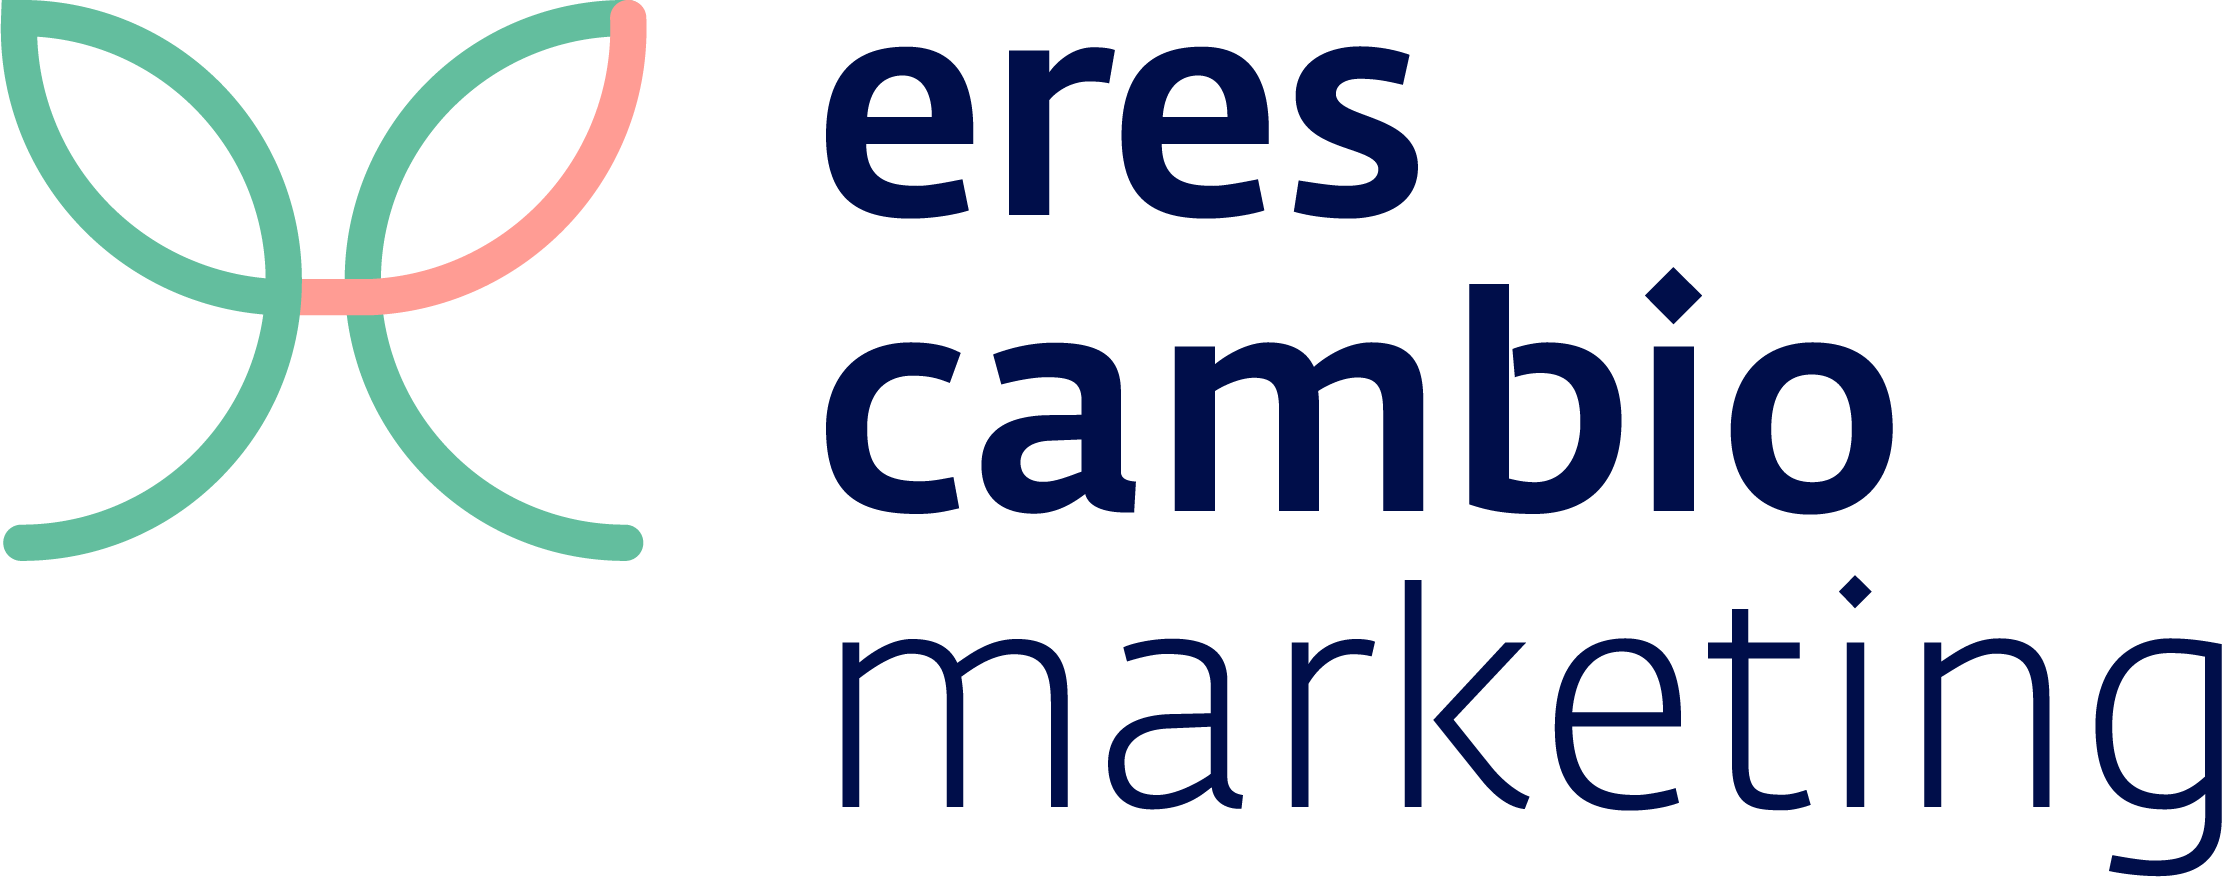 eventos-de-marketing-y-emprendeduria